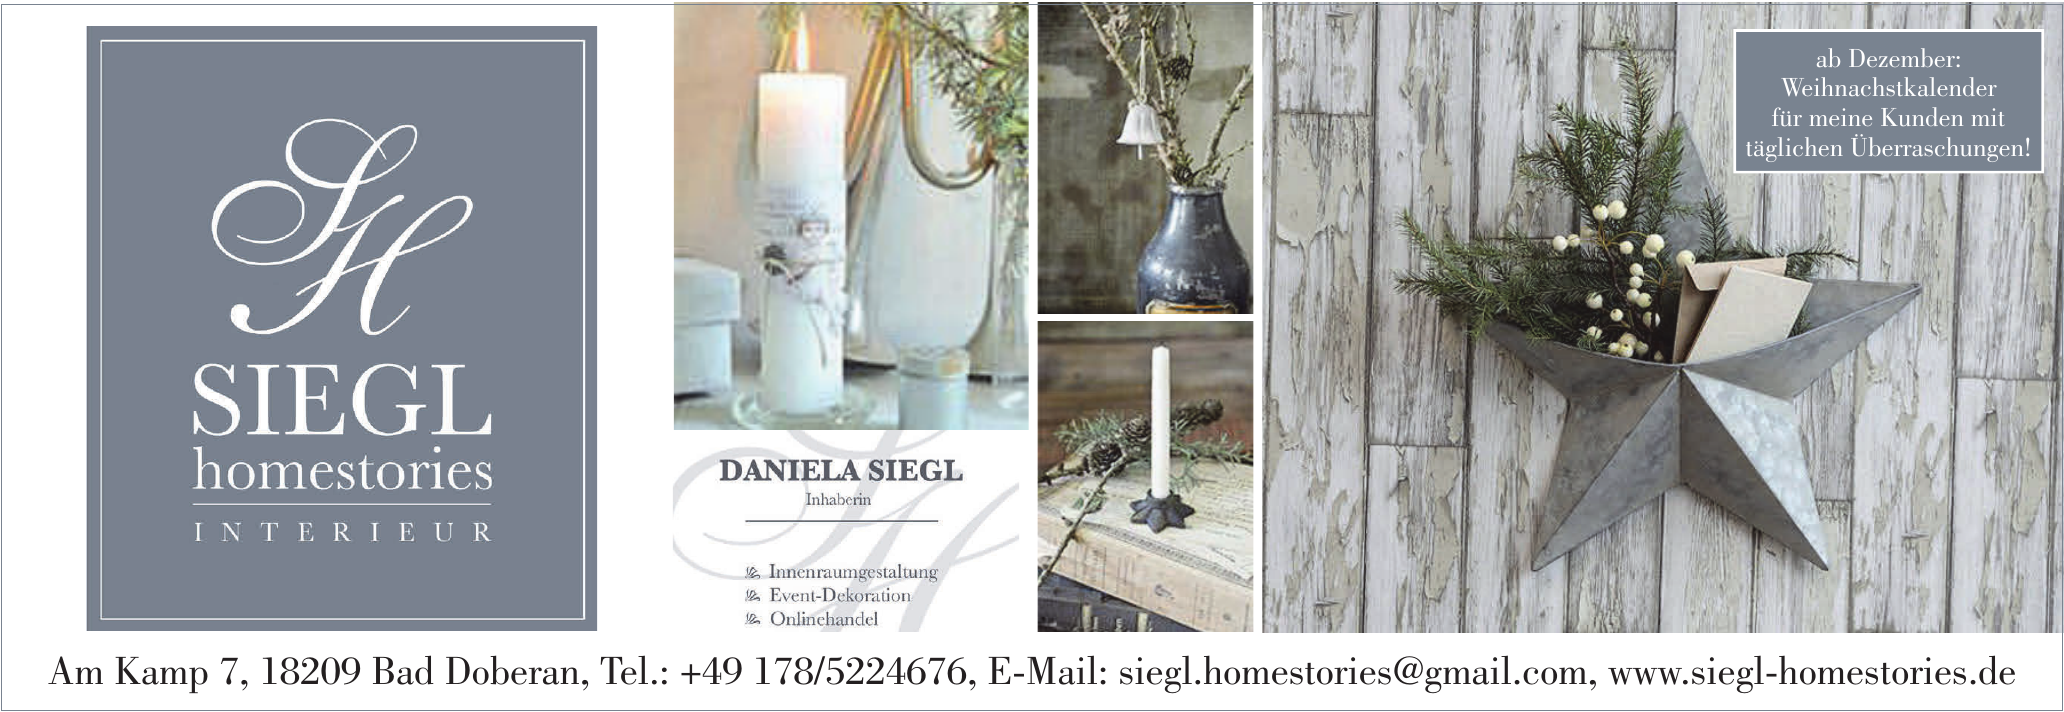 SIEGL homestories Interieur